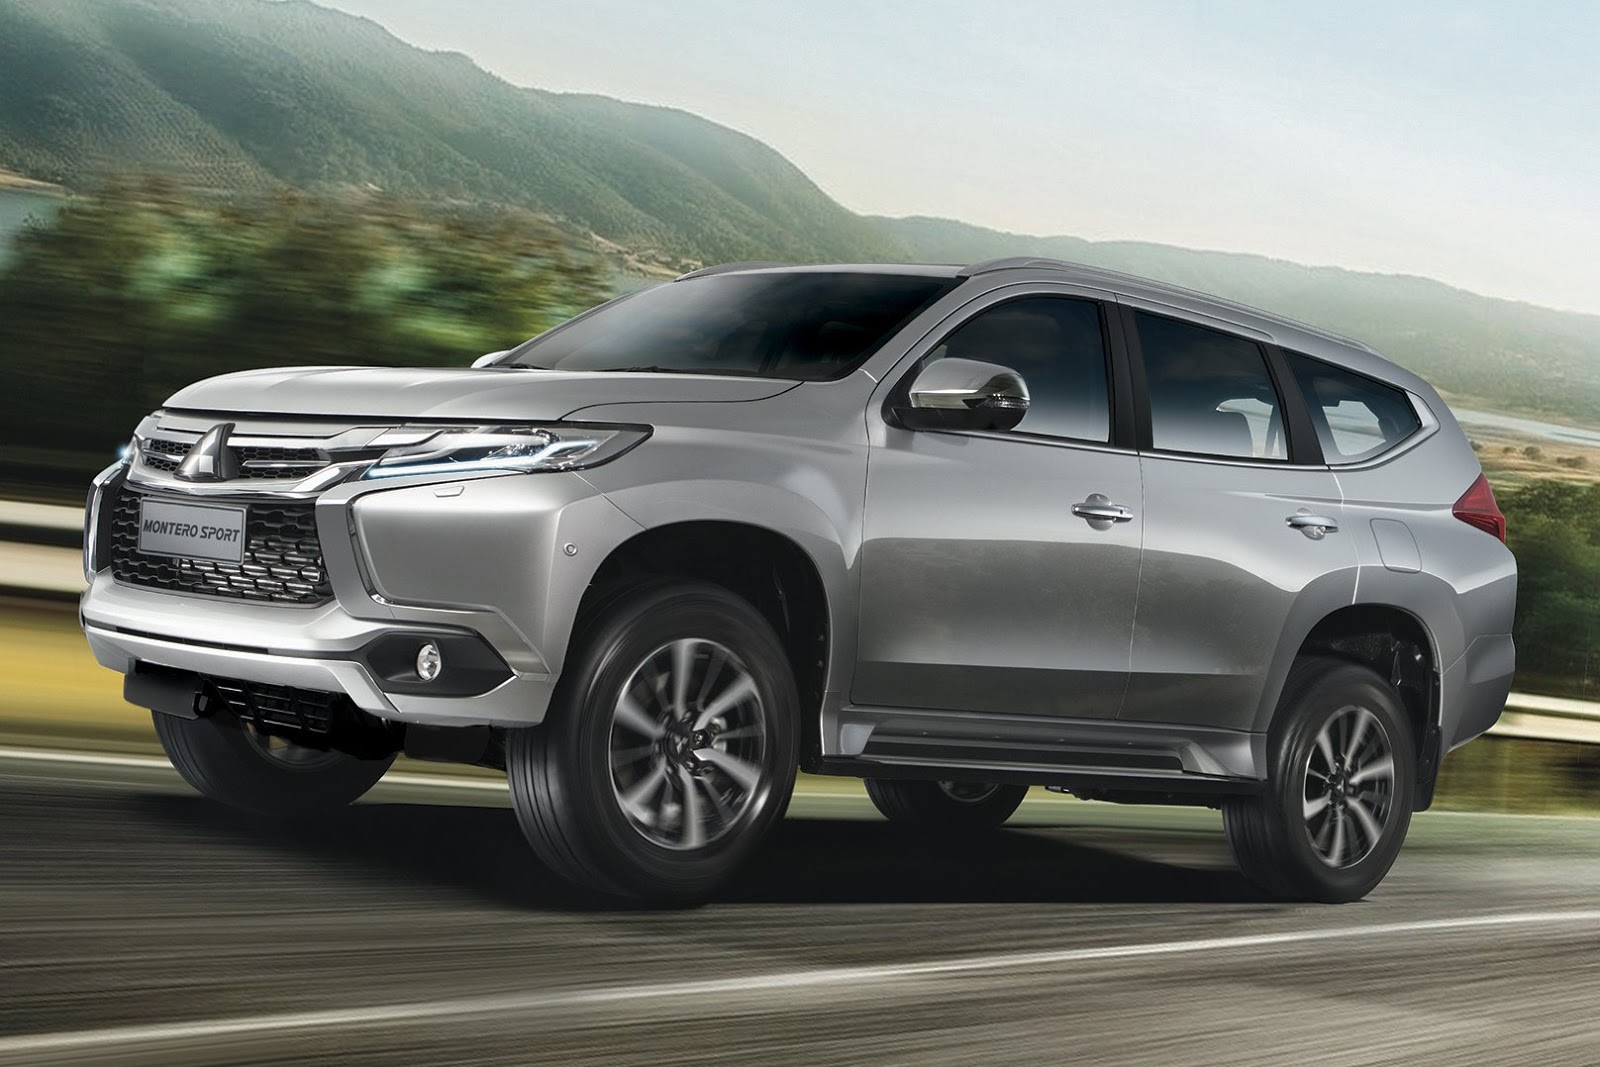 mitsubishi montero sport tops mid-sized suv sales in february